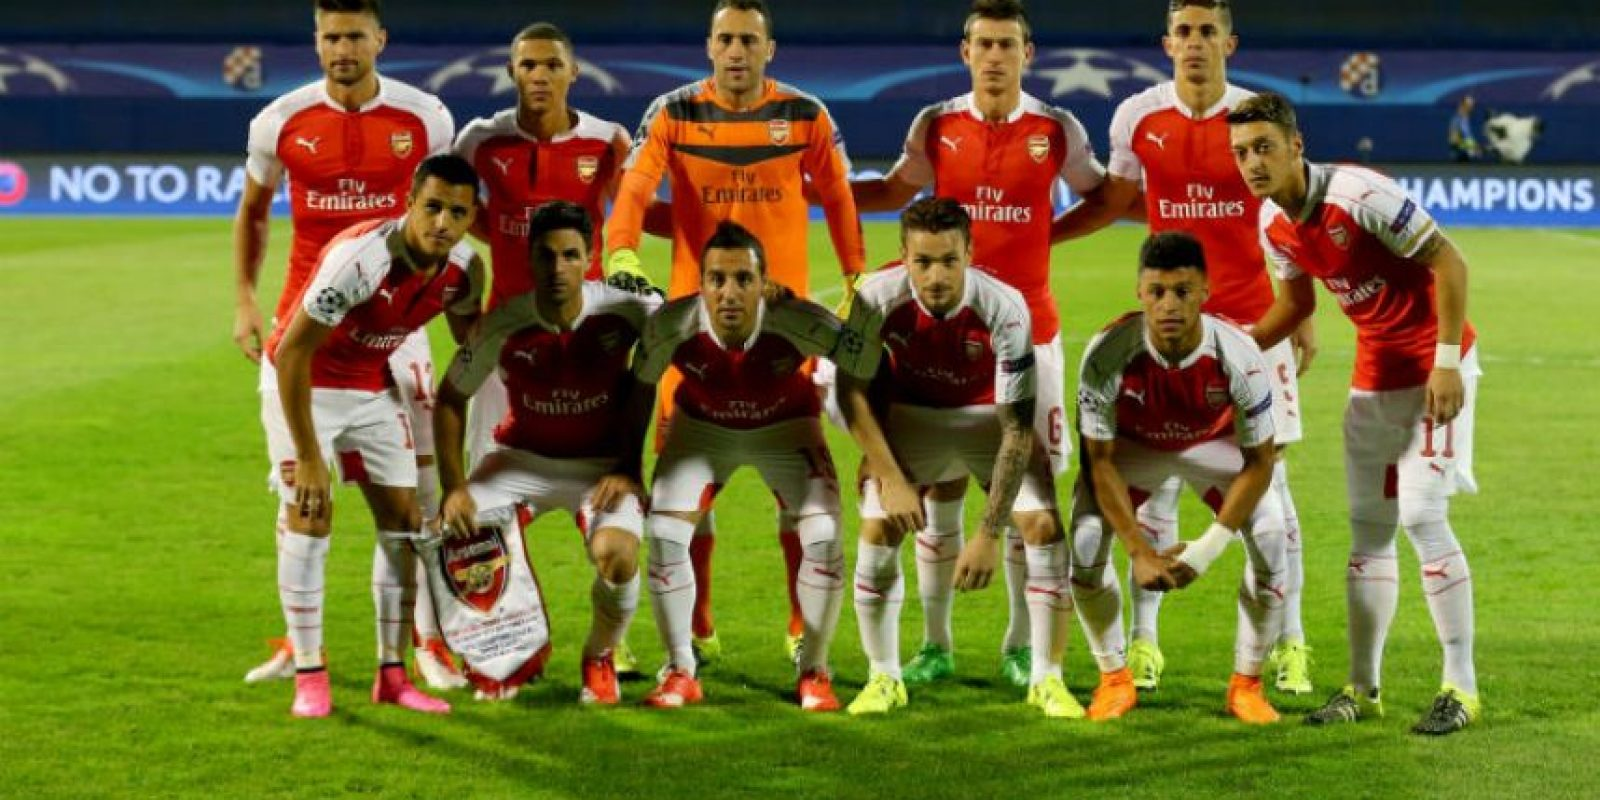 3. Arsenal Foto: Getty Images